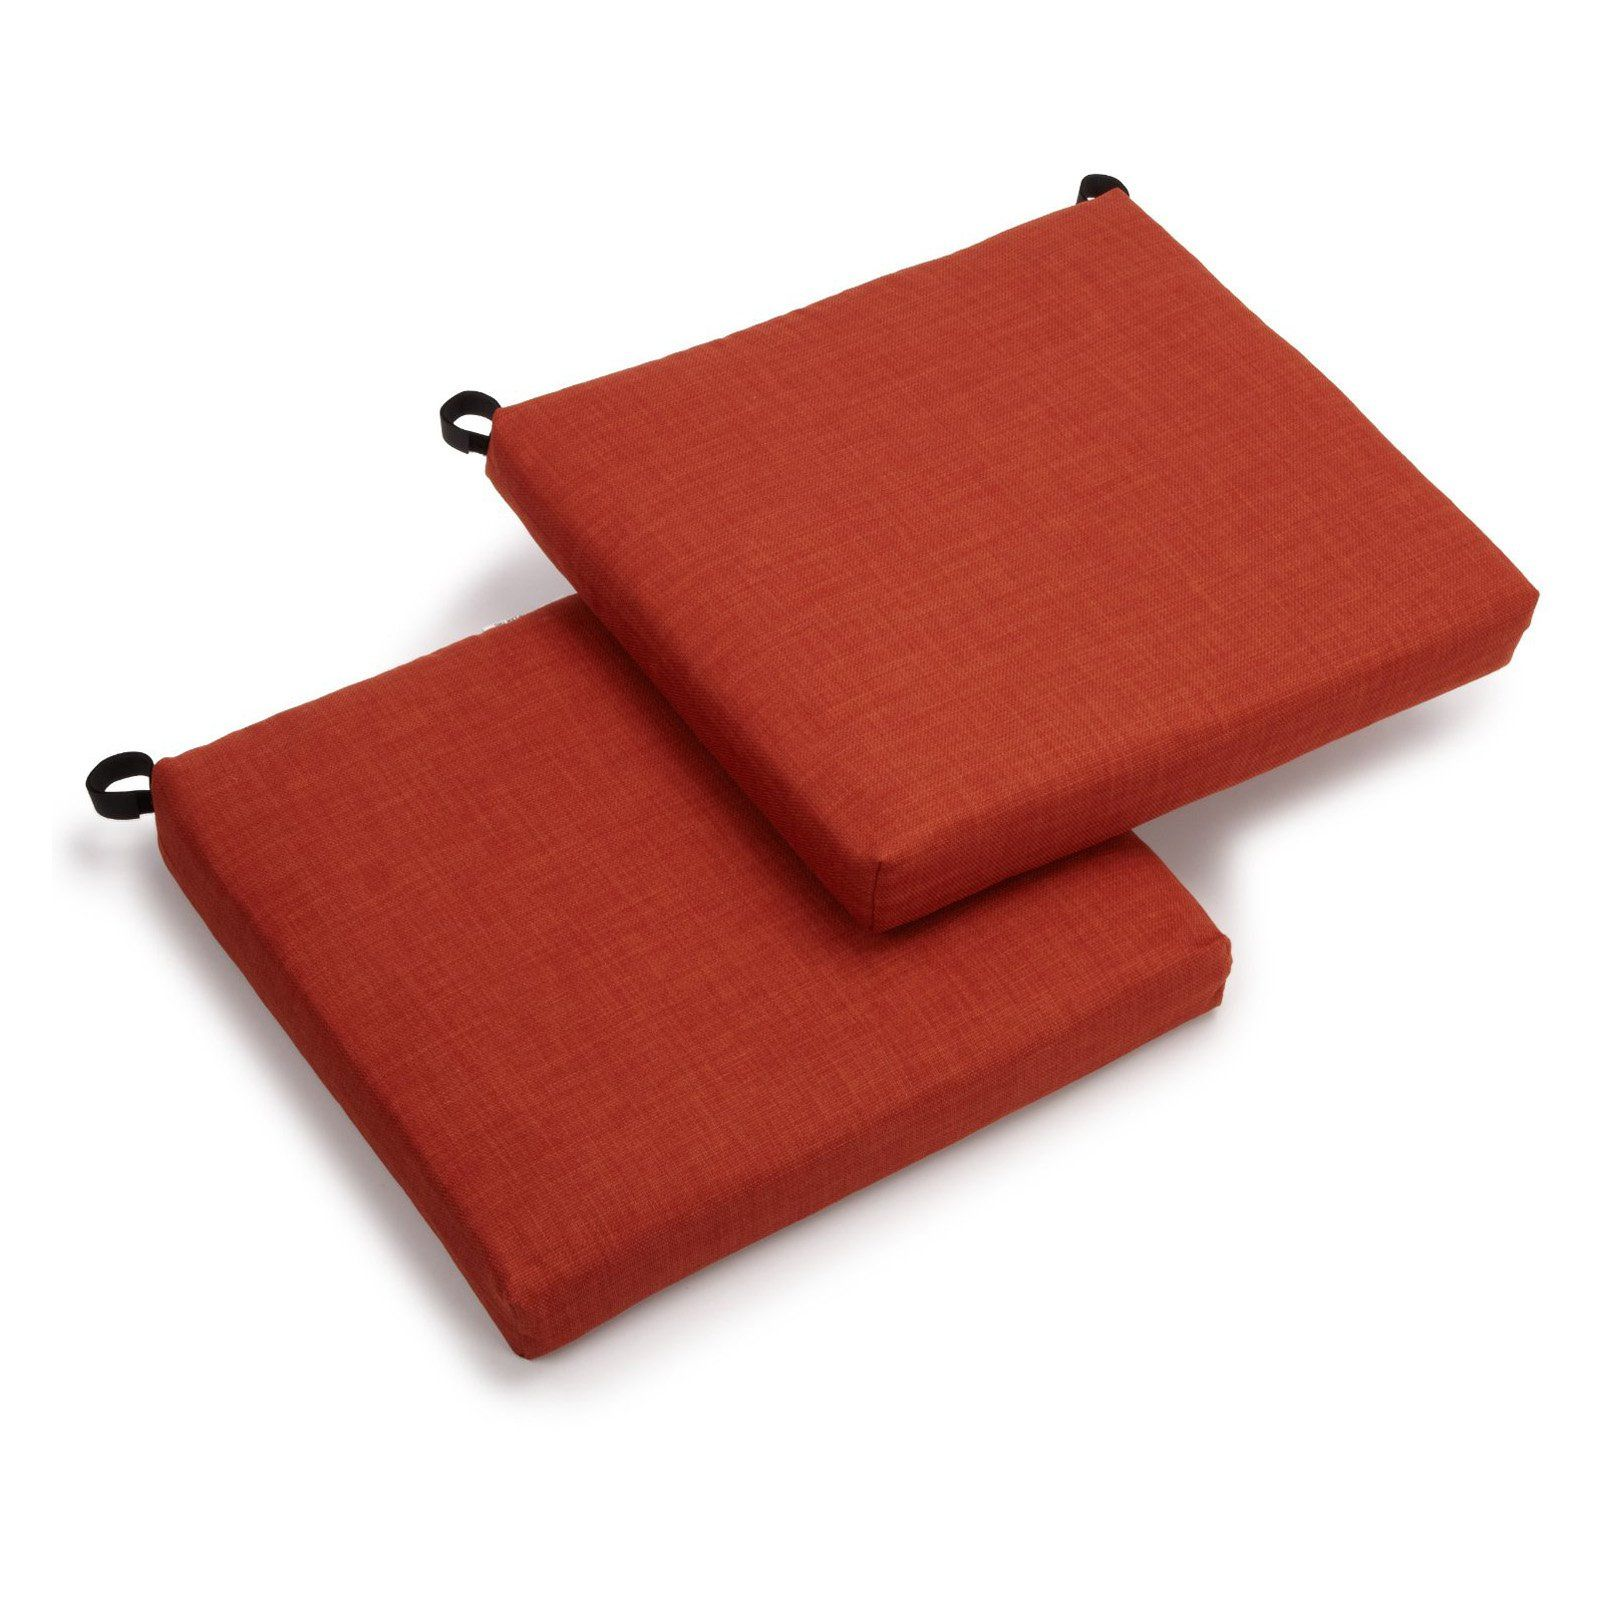 Outdoor Chair Cushions   Set Of 2   93454 2CH REO SOL 02